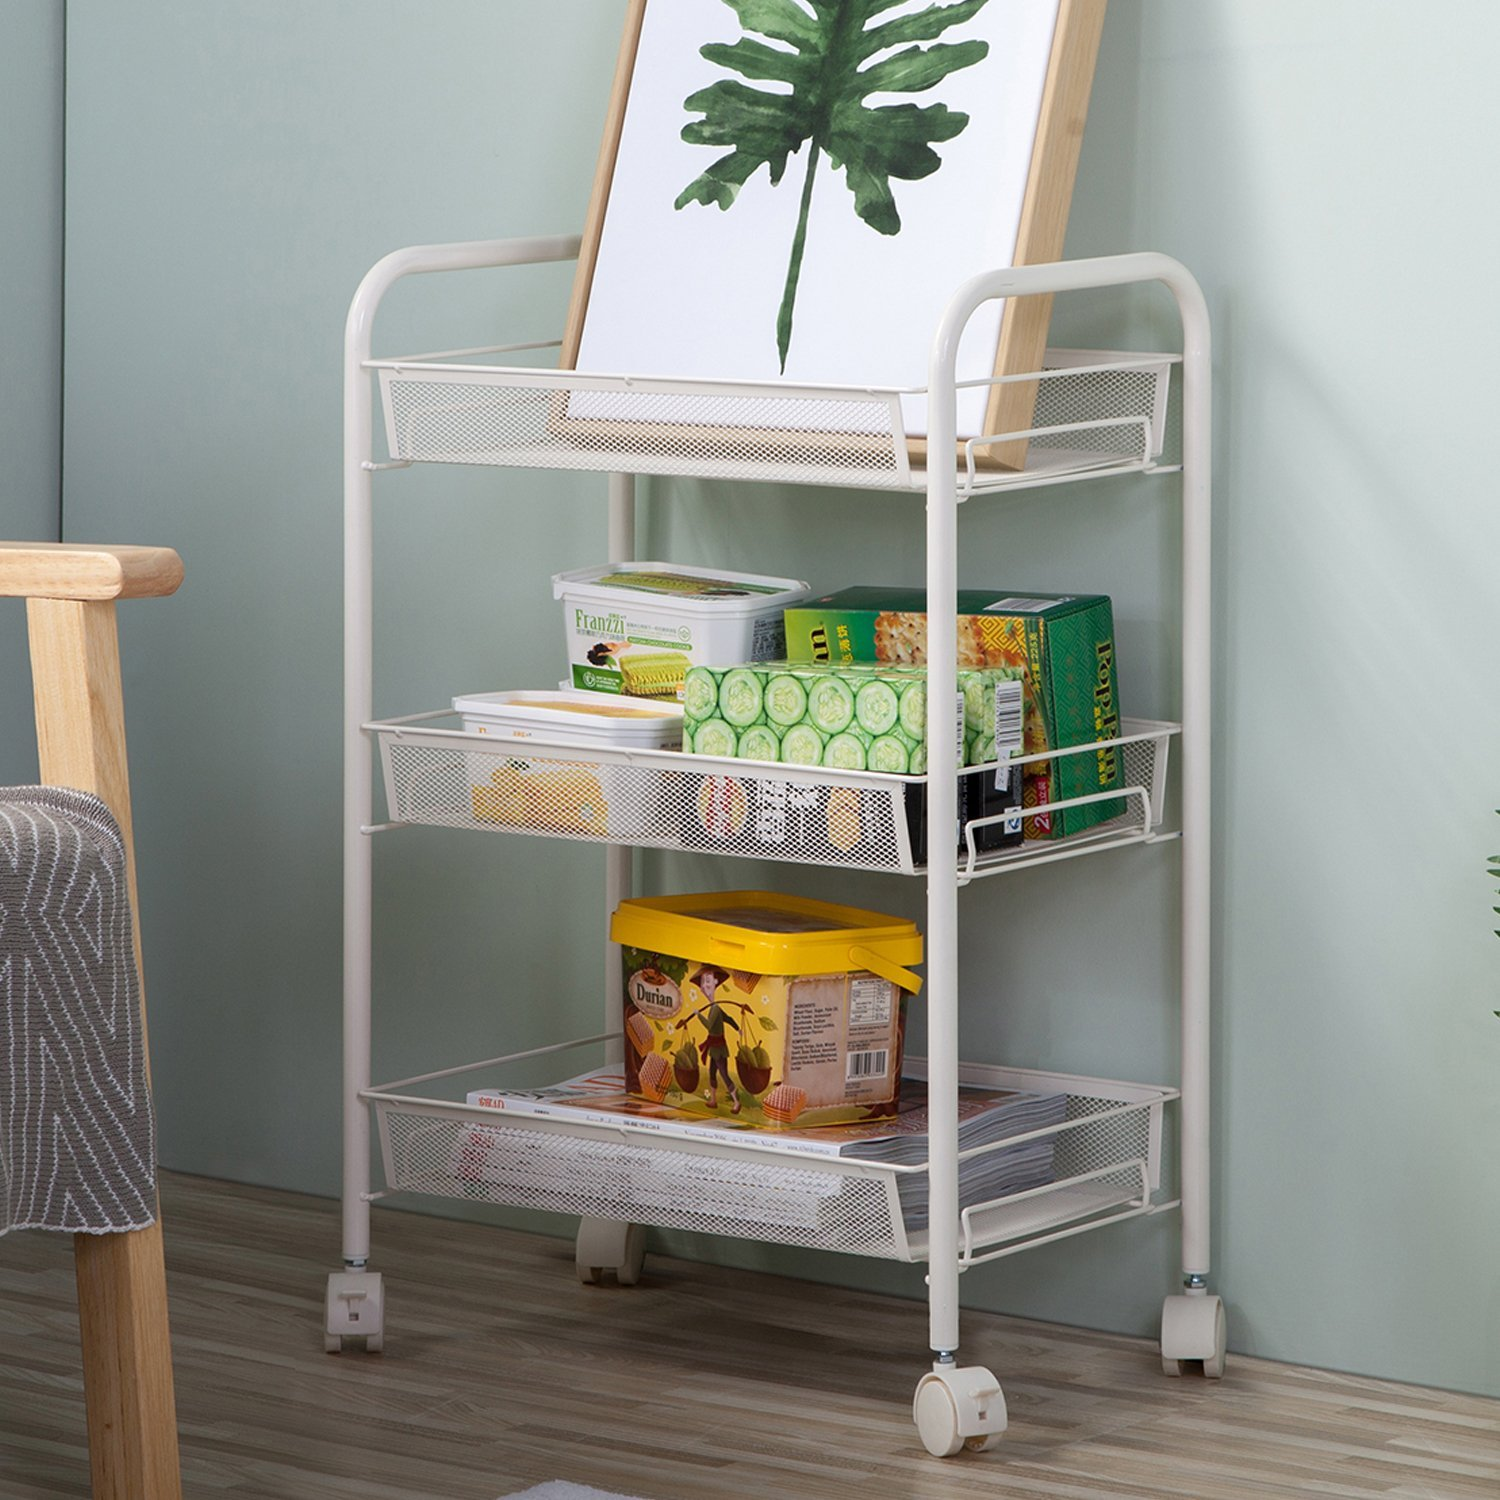 Details About Shelving Rack 3 Shelf Shelves Rolling Kitchen Pantry Storage  Utility Cart Us